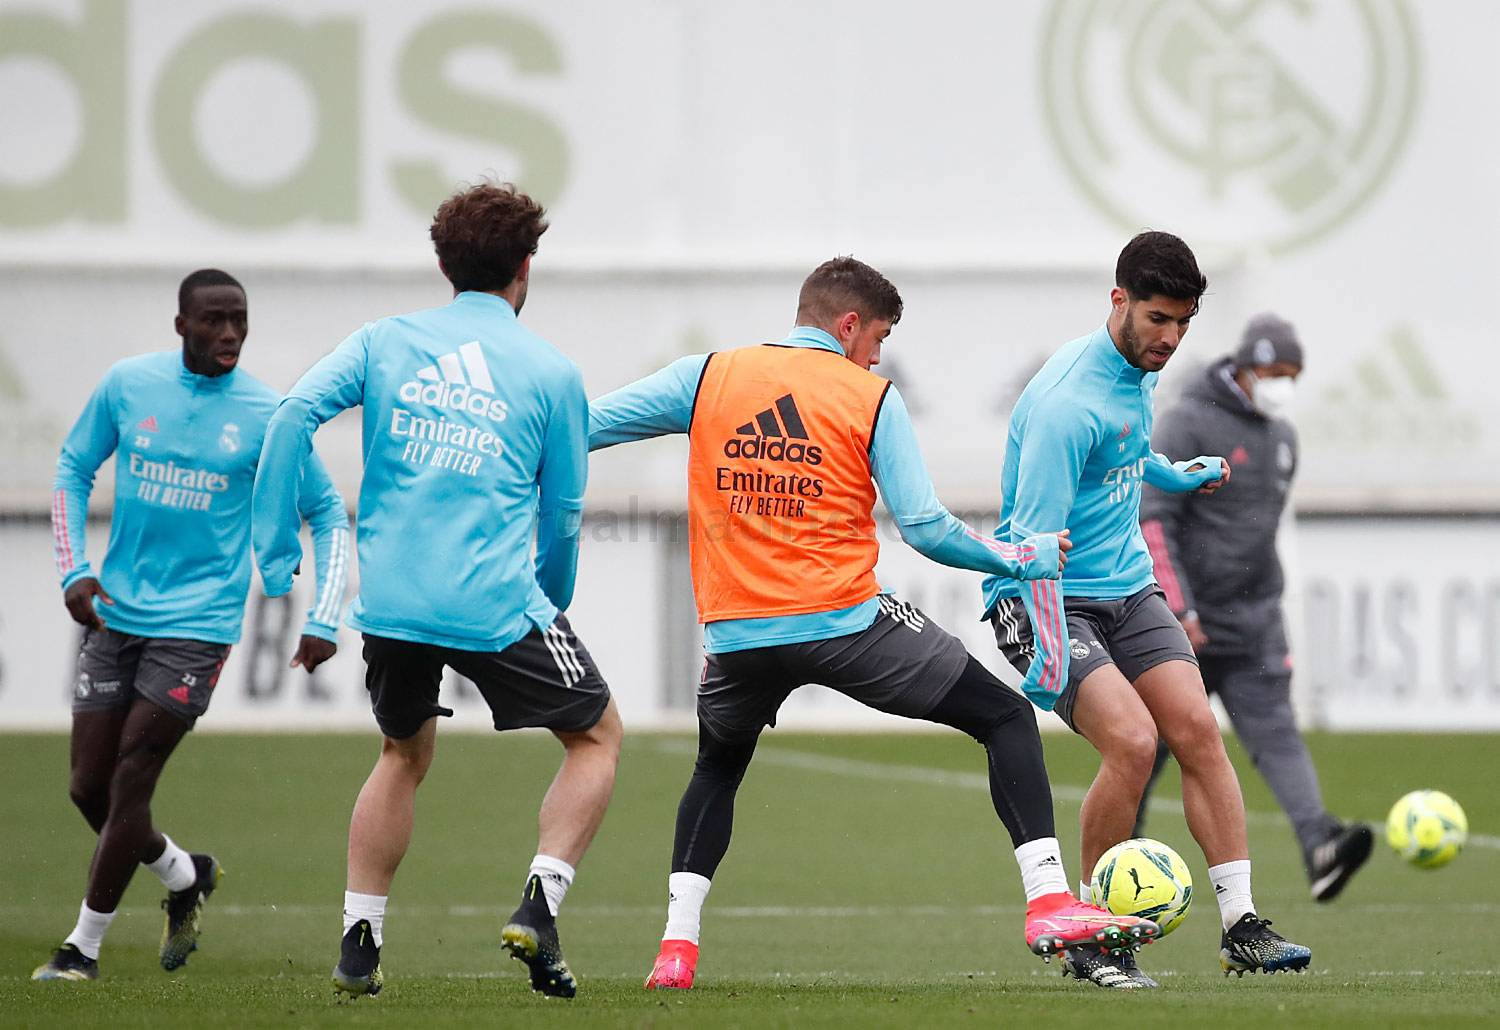 Entrenamiento del Real Madrid  - 15-05-2021